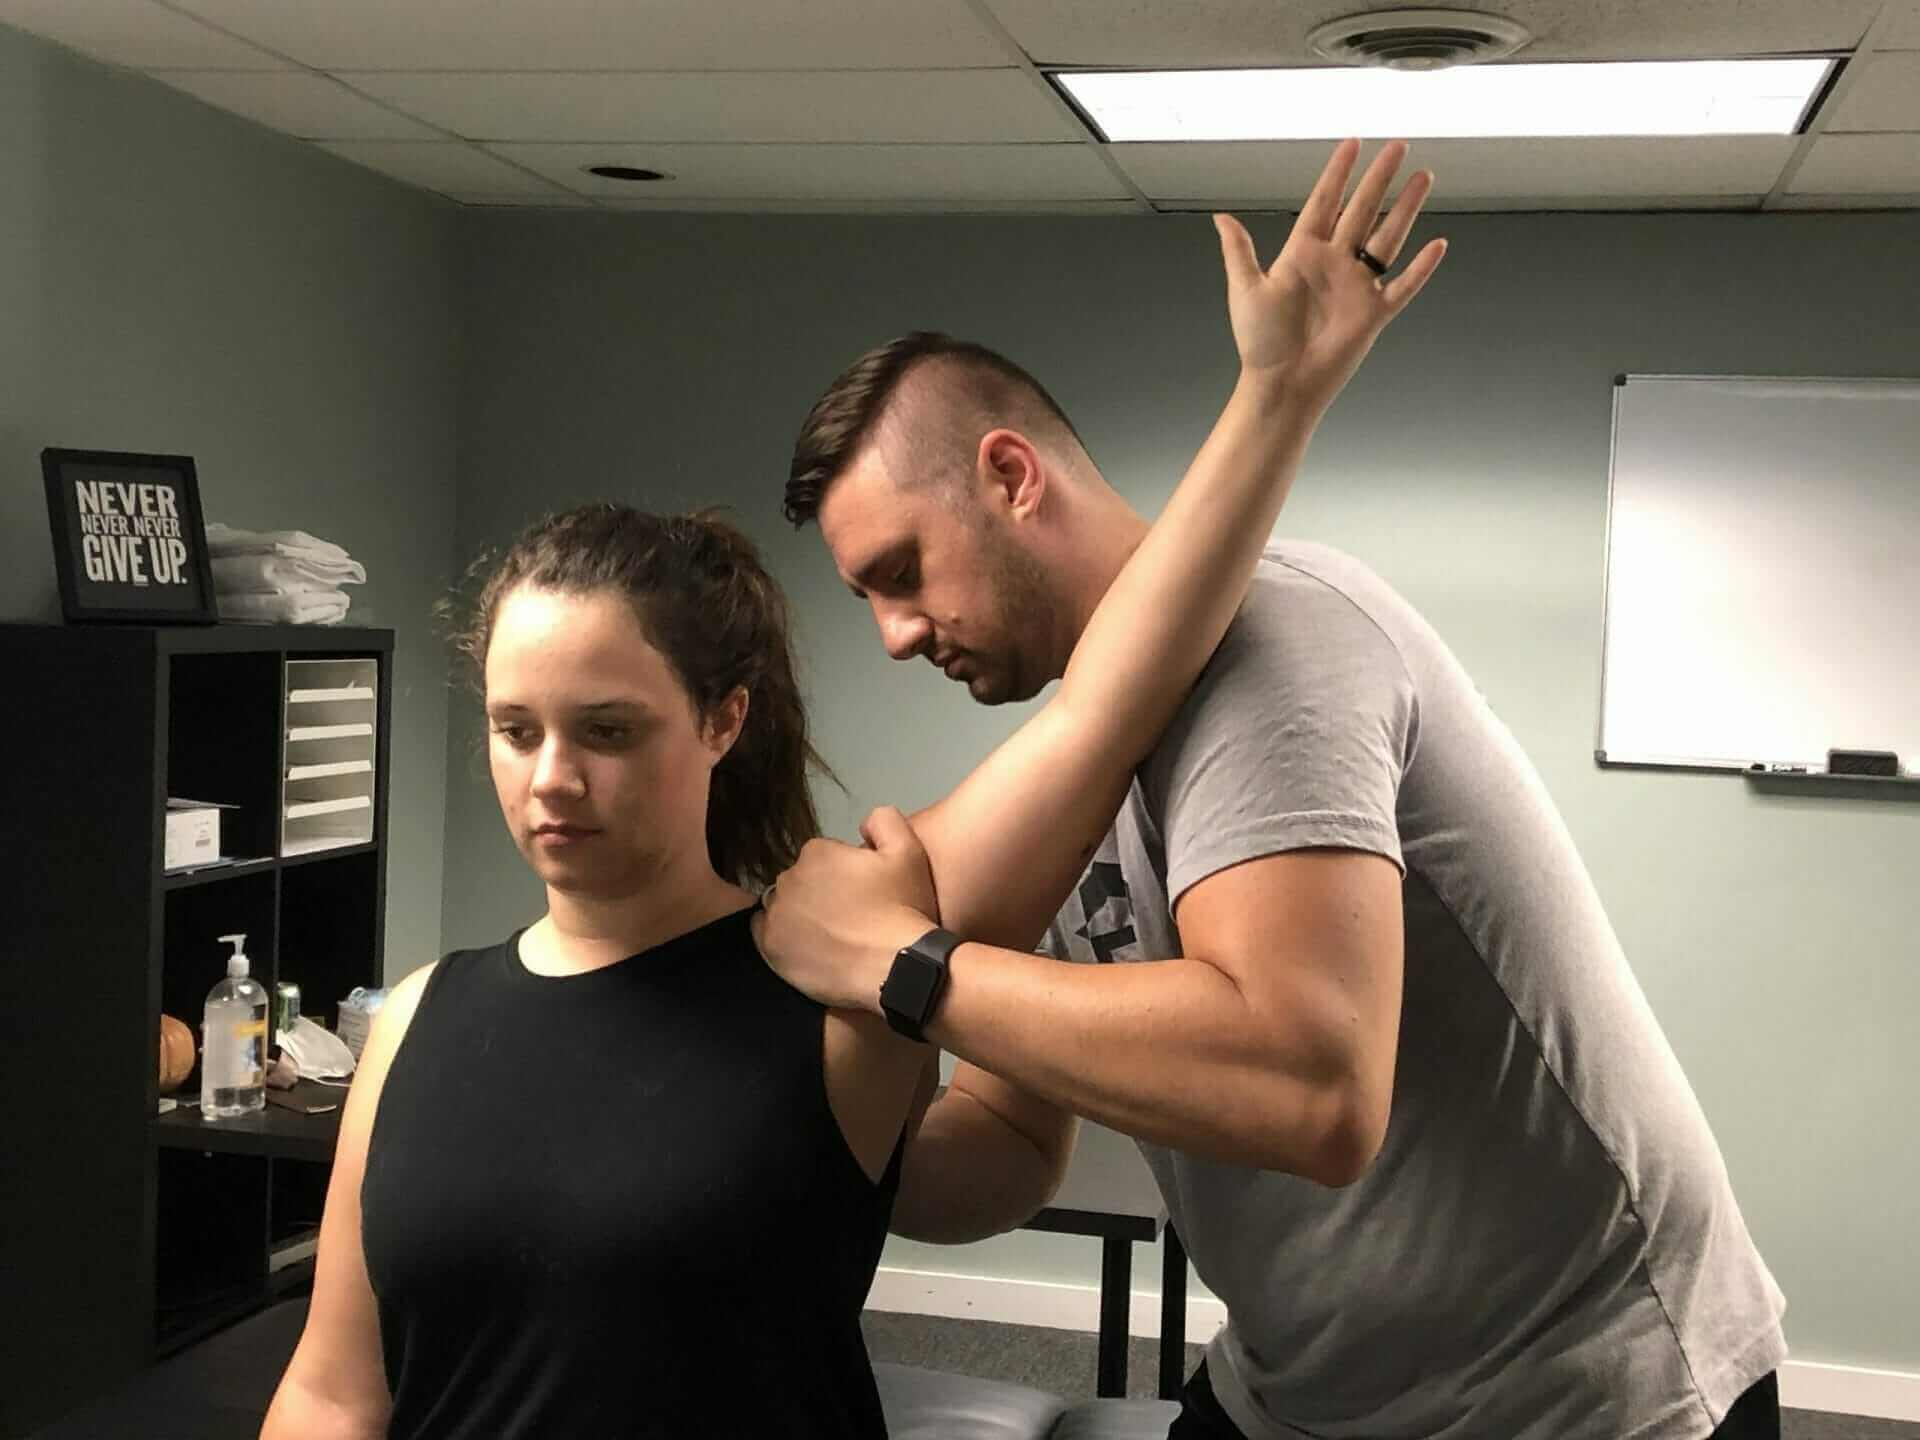 Mobilization for rotator cuff pain and shoulder pain relief, physical therapy in lancaster, ohio